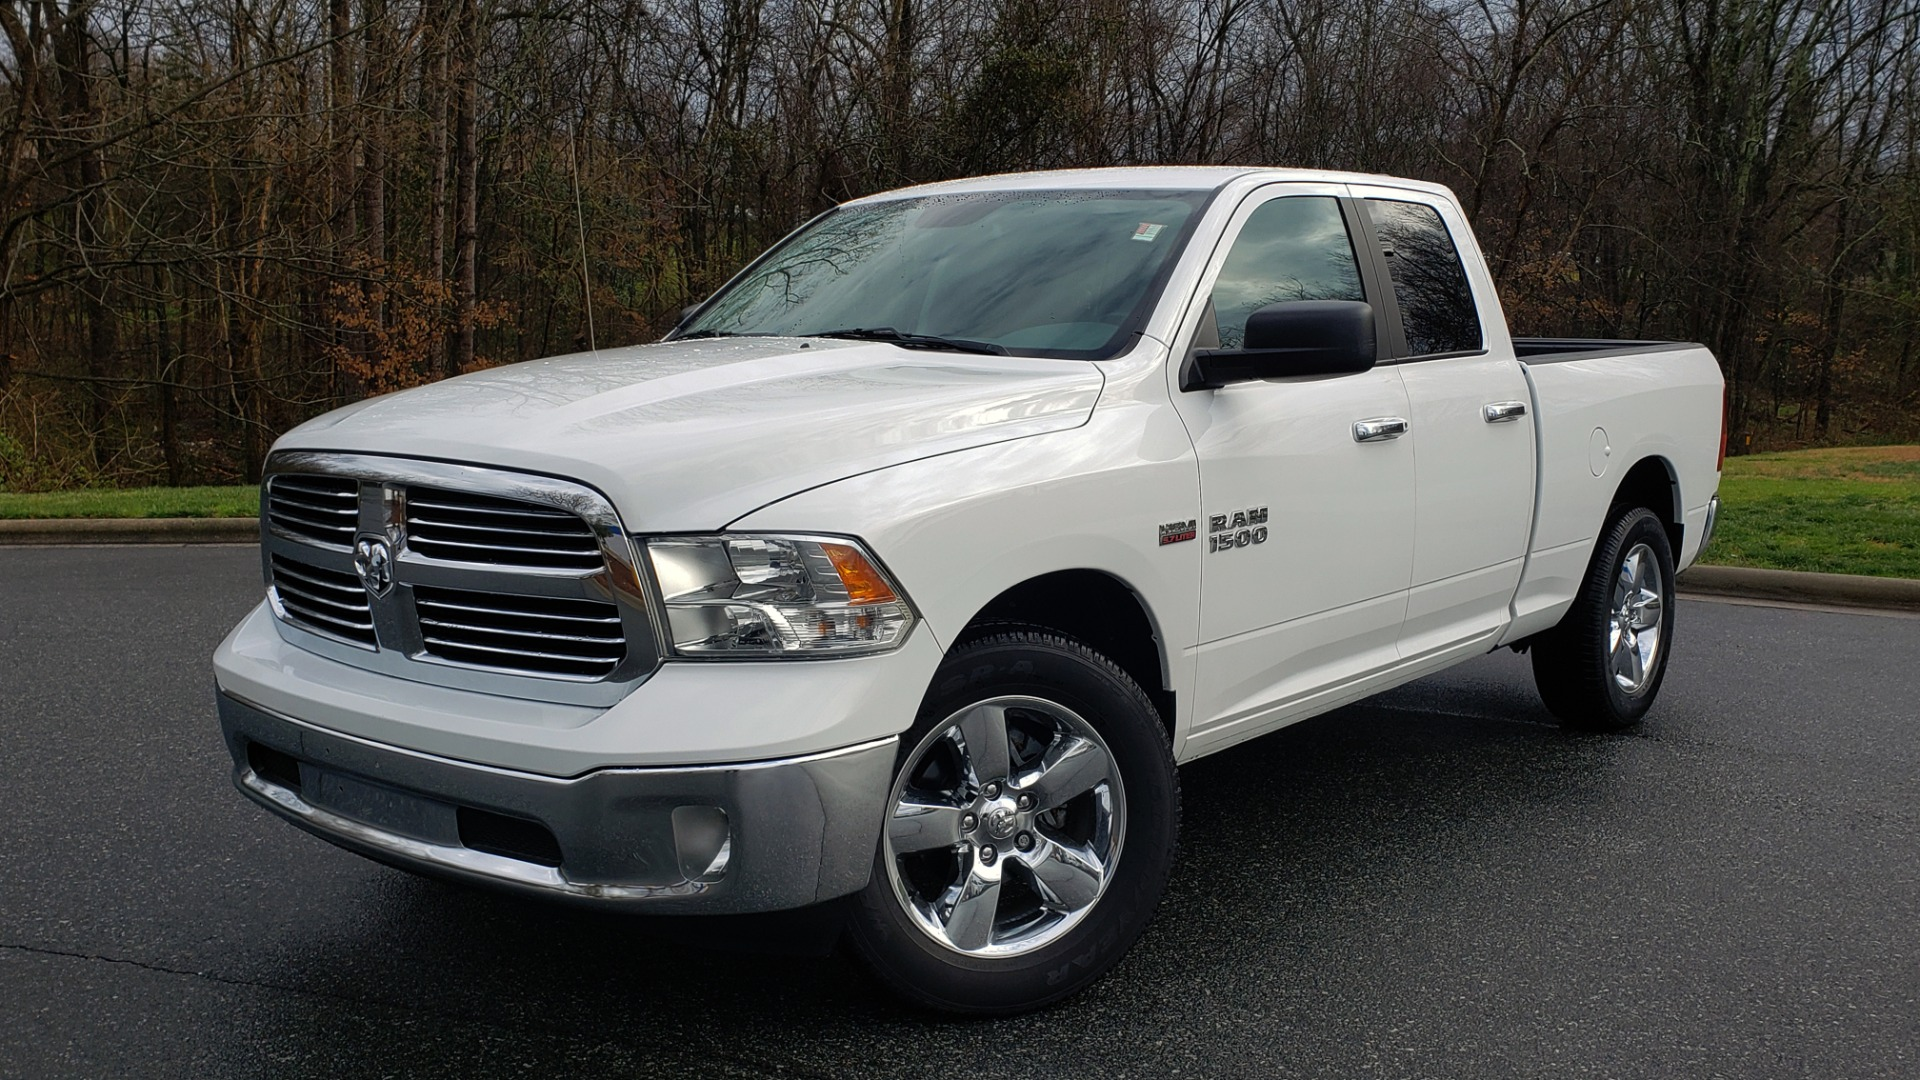 Used 2016 Ram 1500 BIG HORN QUAD CAB 4X4 / 5.7L HEMI V8 / 8-SPD AUTO for sale Sold at Formula Imports in Charlotte NC 28227 1